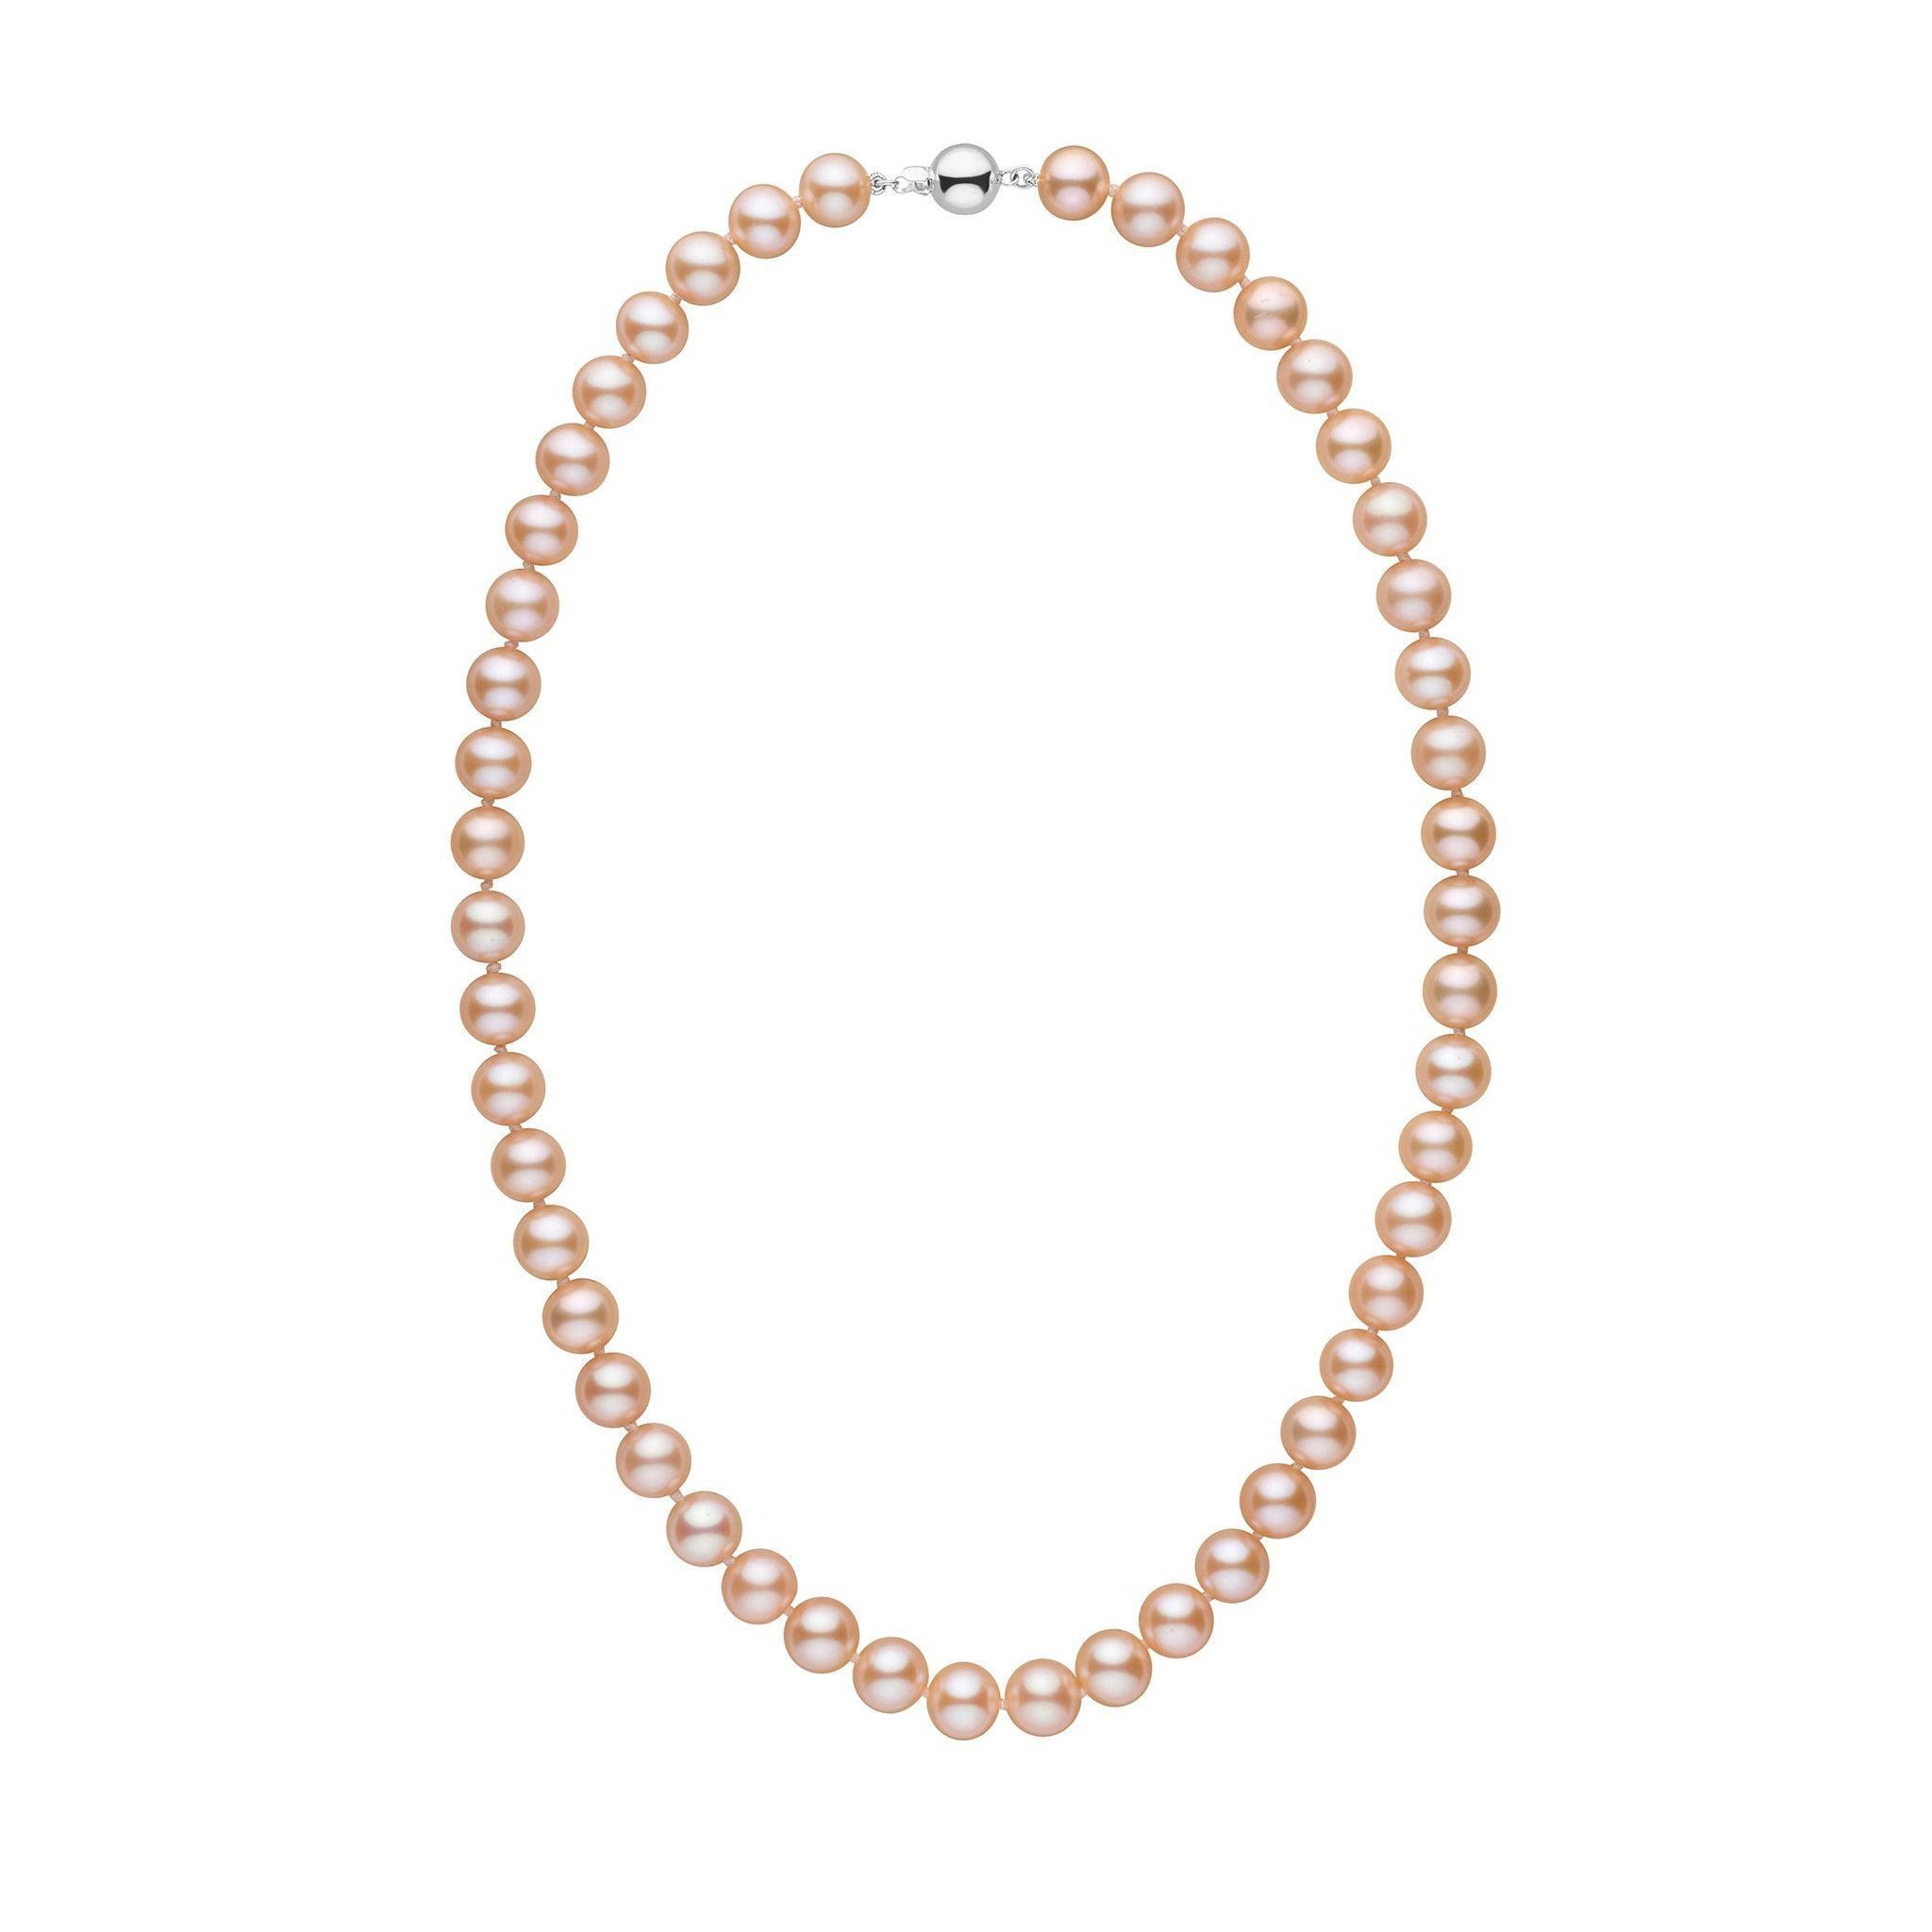 8.5-9.0 mm 18 Inch AAA Pink to Peach Freshwater Pearl Necklace